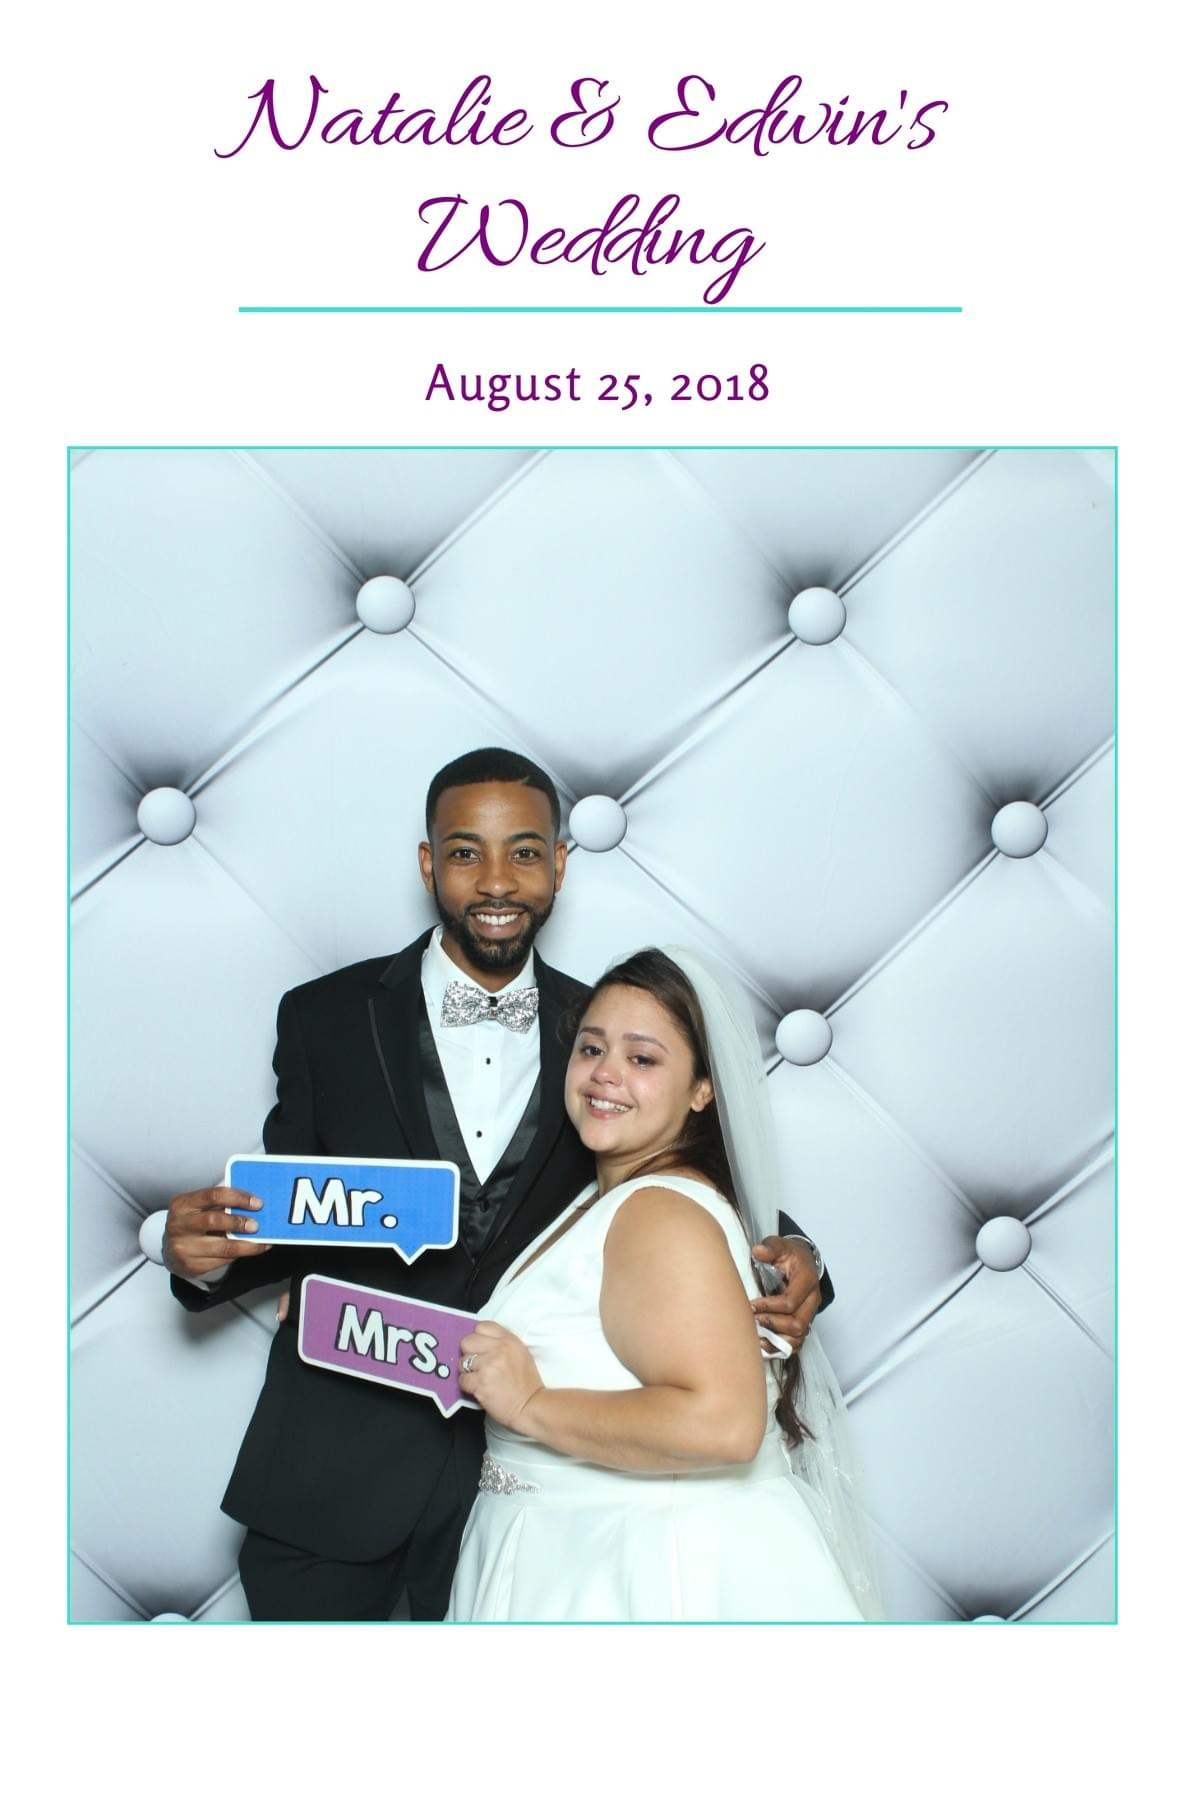 The Magic Selfie Mirror Photobooth with Wilmington, Delaware weddings